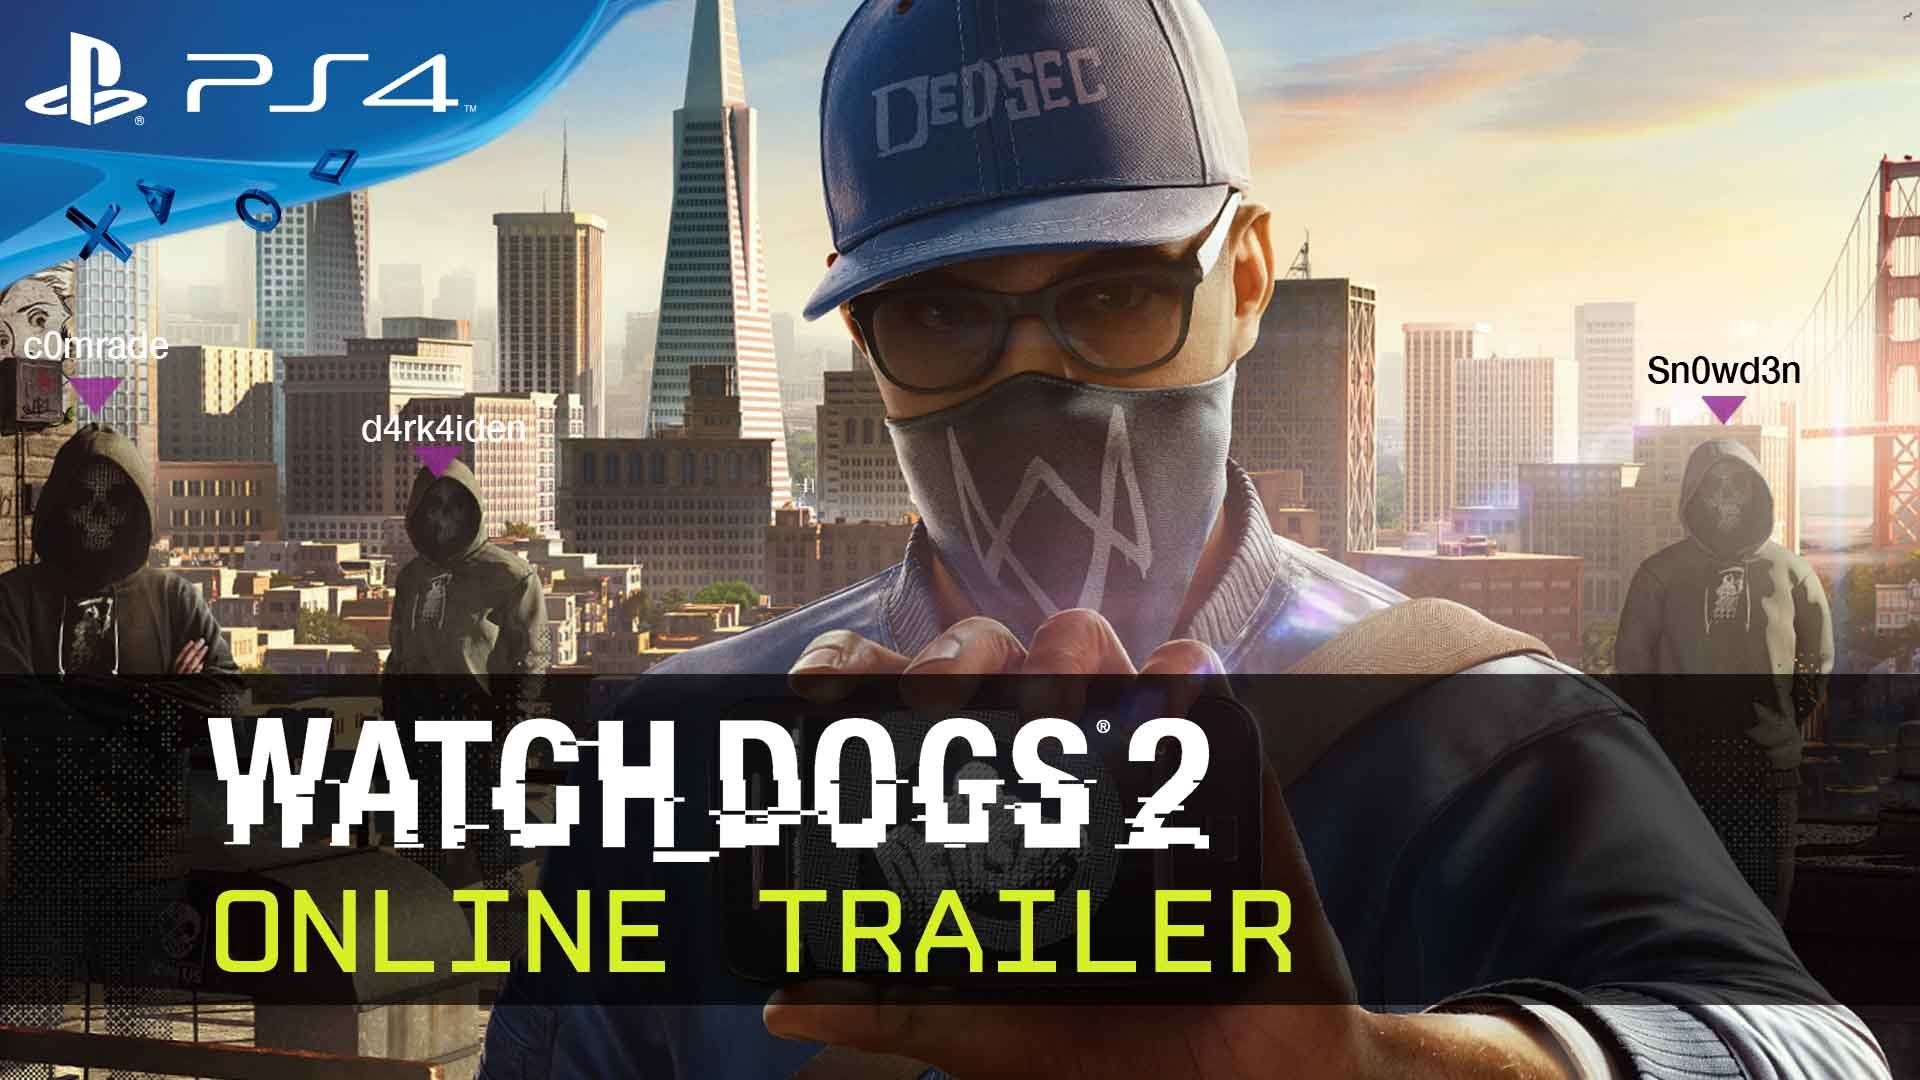 Watch Dogs 2 - Online Trailer